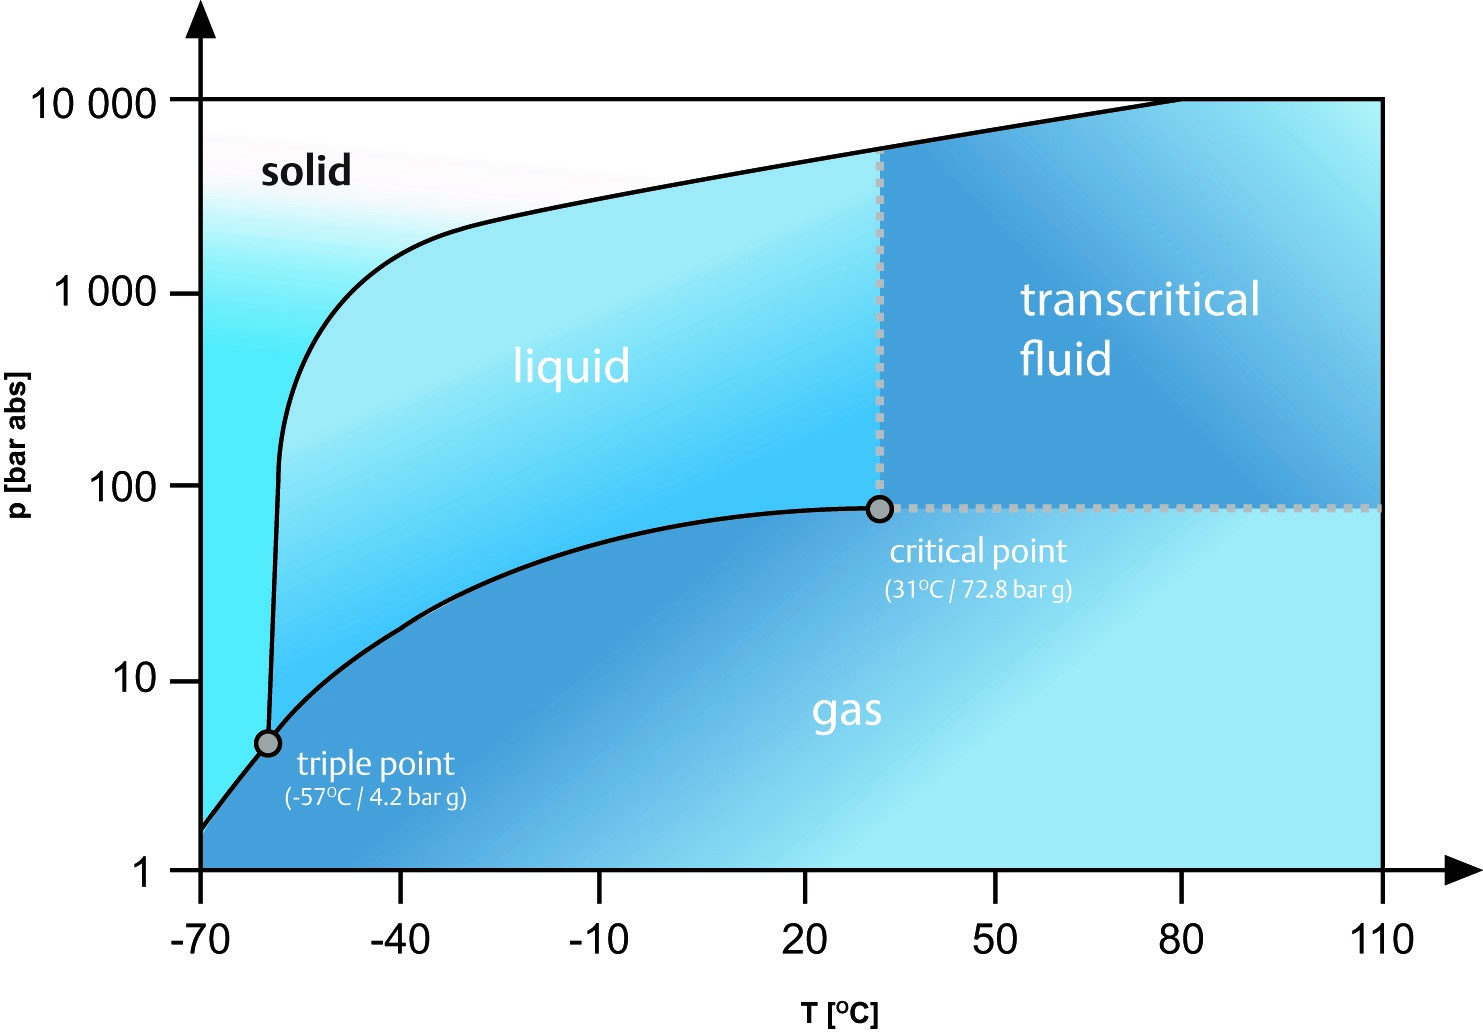 medium resolution of figure 1 r744 co2 phase diagram the triple point occurs